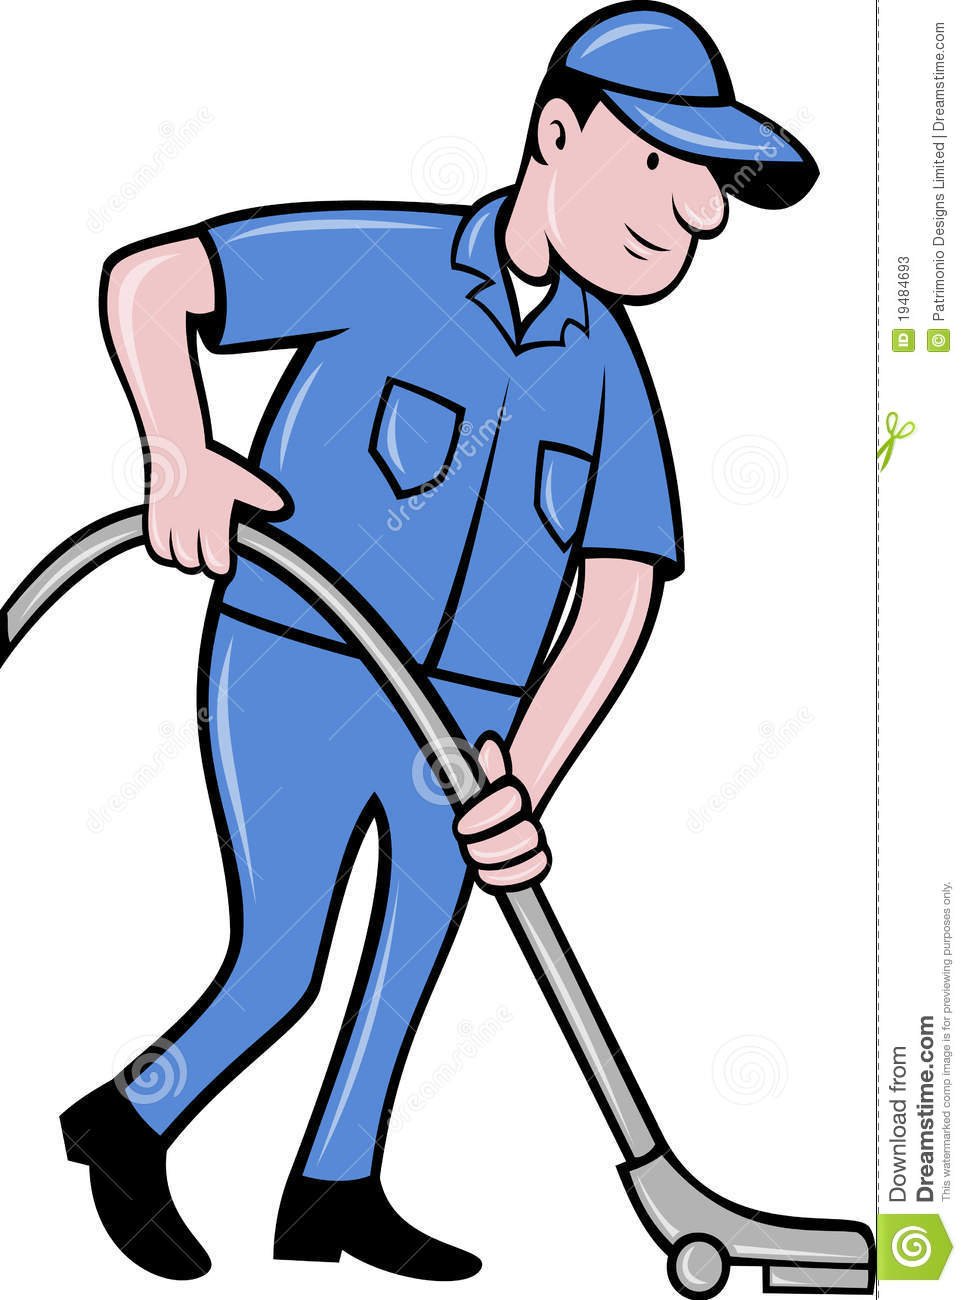 Vacuum cleaner clipart vacuum cleaner clip art - Cartoon Cleaner Cleaning Illustration Isolated Male Vacuum Worker Artwork